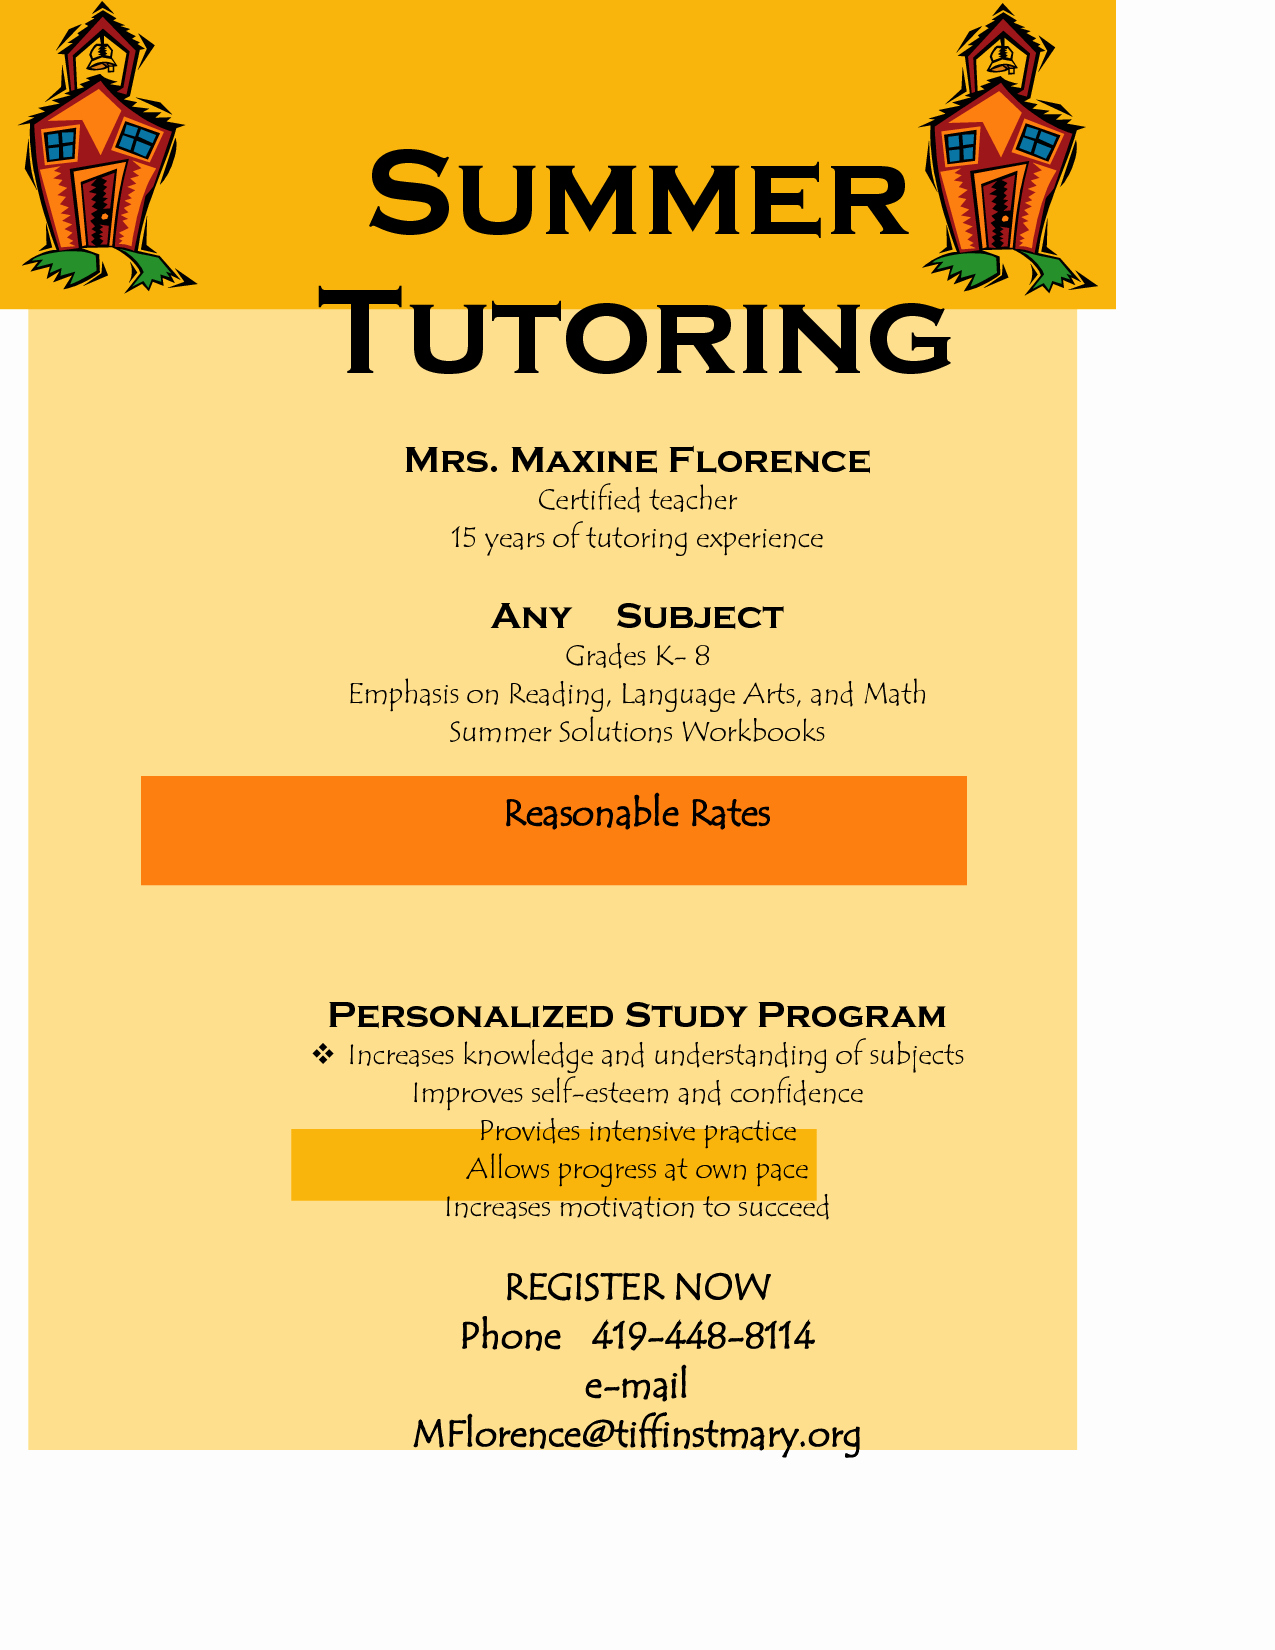 Tutor Flyer Template Free Lovely Flyer for Tutoring Services